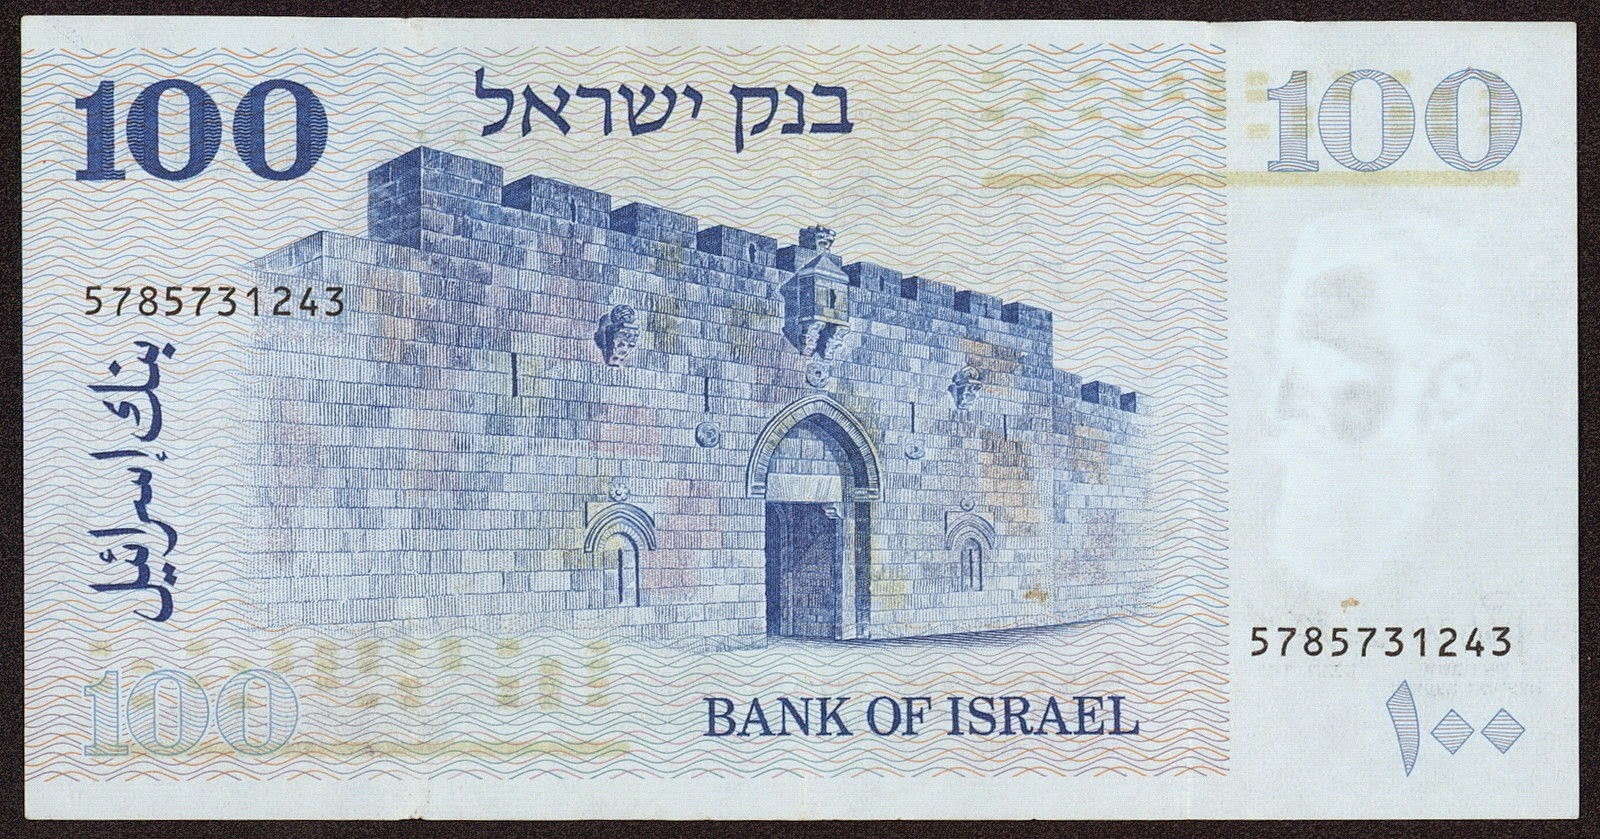 Israel Banknotes 100 Lirot Note 1973 Bank of Israel